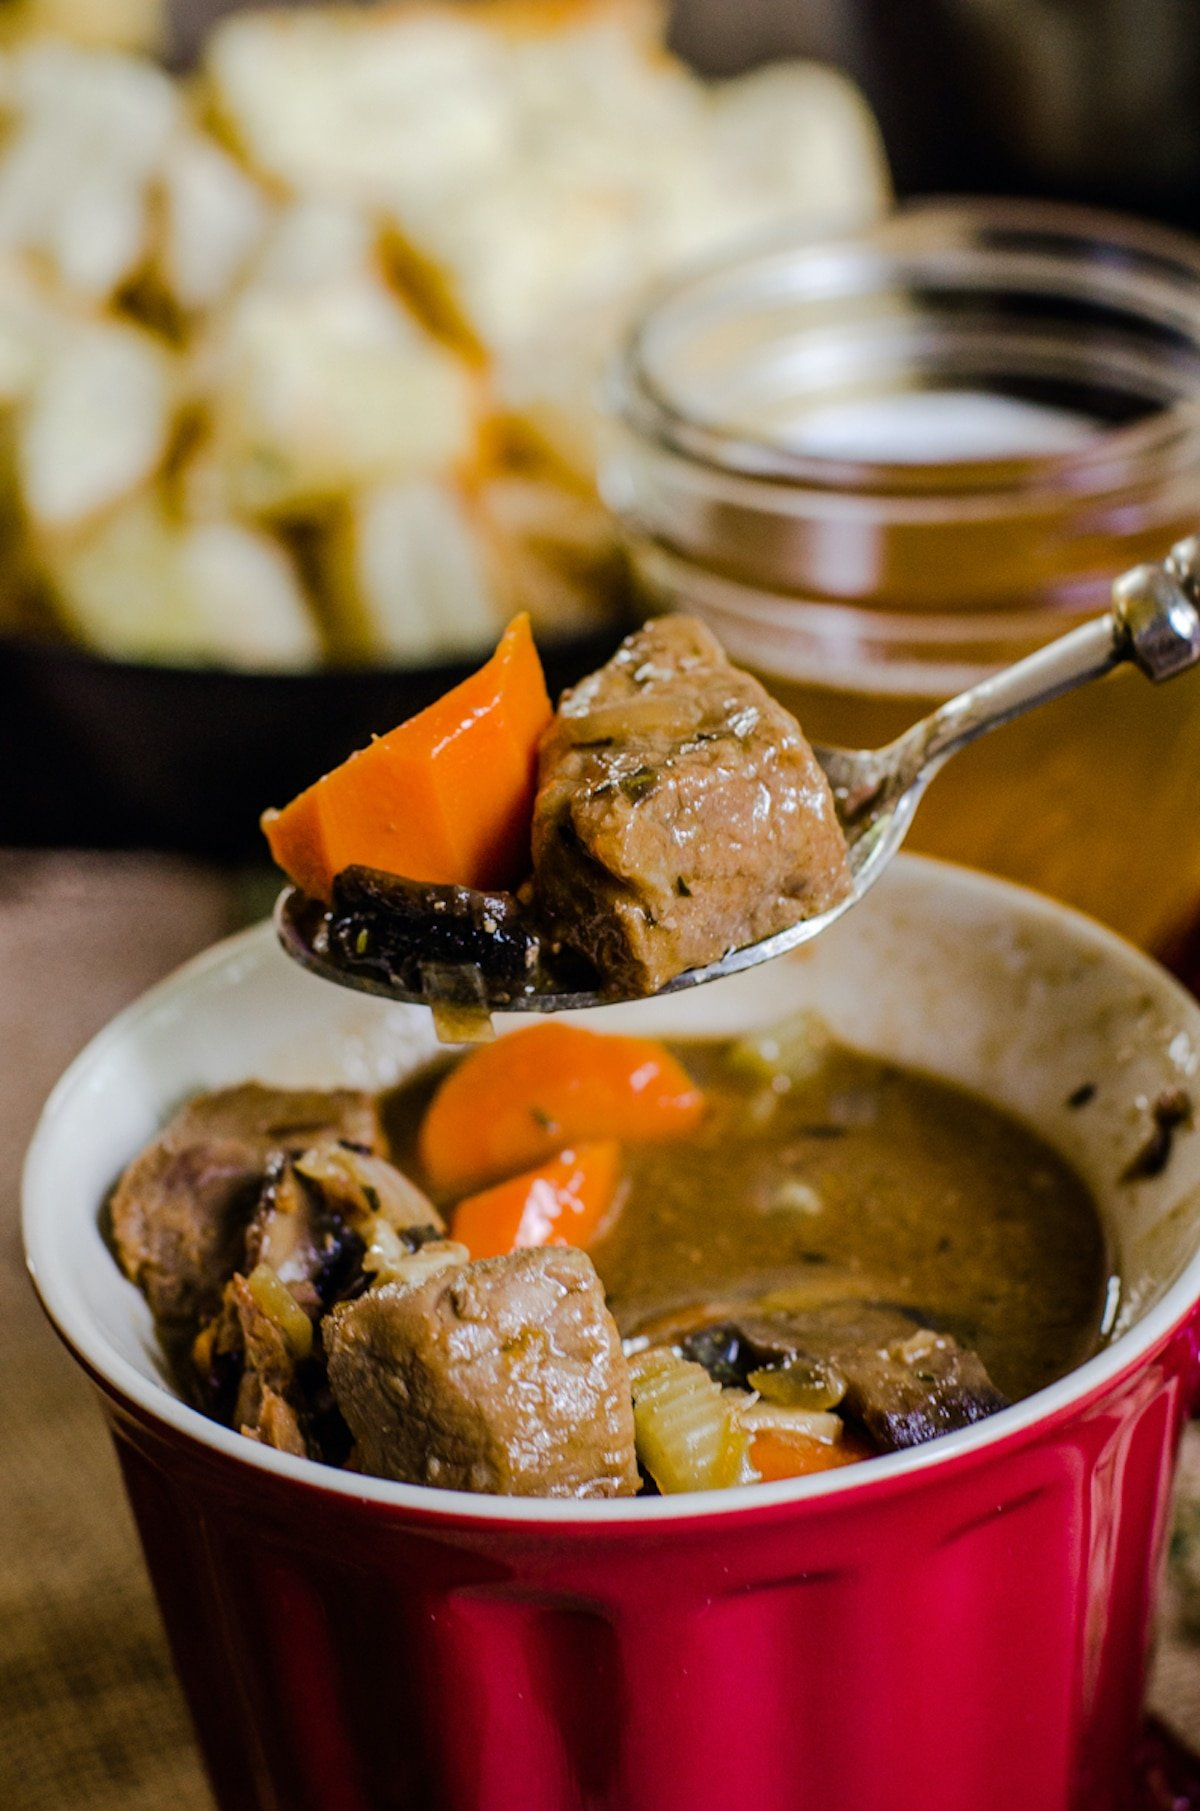 A spoon lifting beef and vegetables out of steak and ale soup.